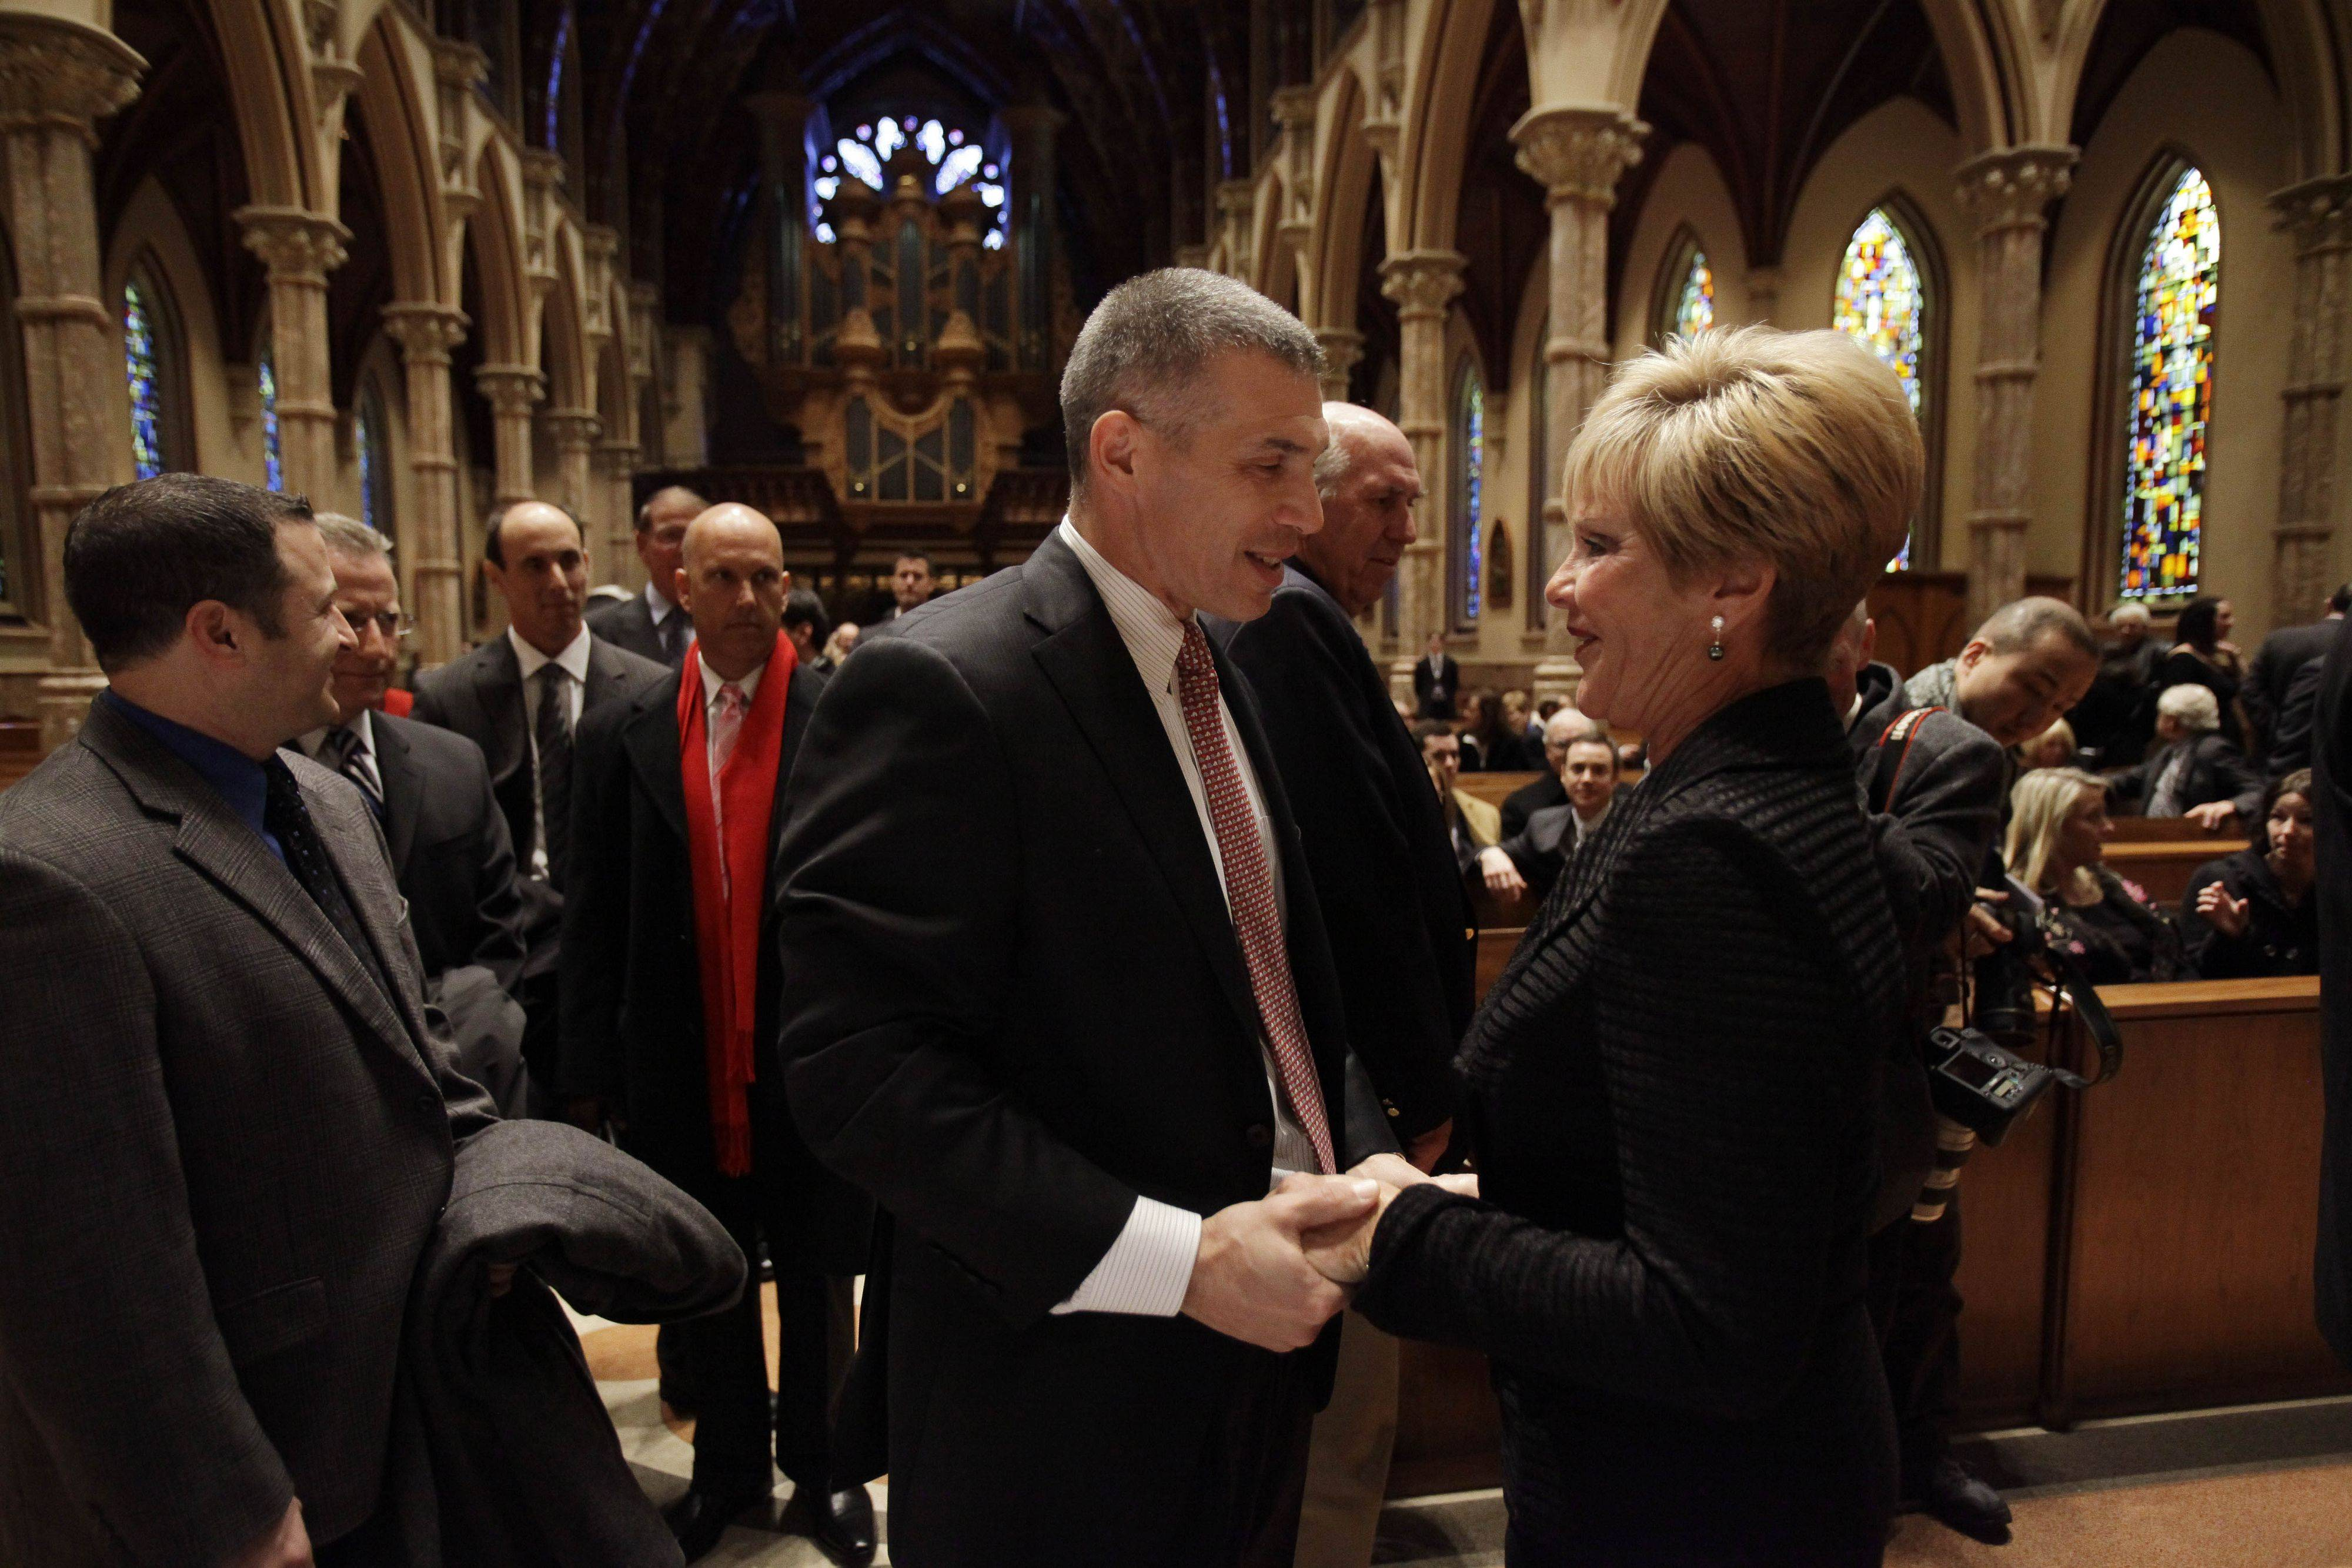 New York Yankees manager Joe Girardi talks to Vicki Santo, wife of Chicago Cubs great and longtime radio announcer Ron Santo, during the visitation at Holy Name Cathedral Thursday, Dec. 9, 2010, in Chicago. The nine-time all-star died Thursday, Dec. 2, 2010 in an Arizona hospital from complication of bladder cancer. He was 70. (AP Photo/Nam Y. Huh, Pool)